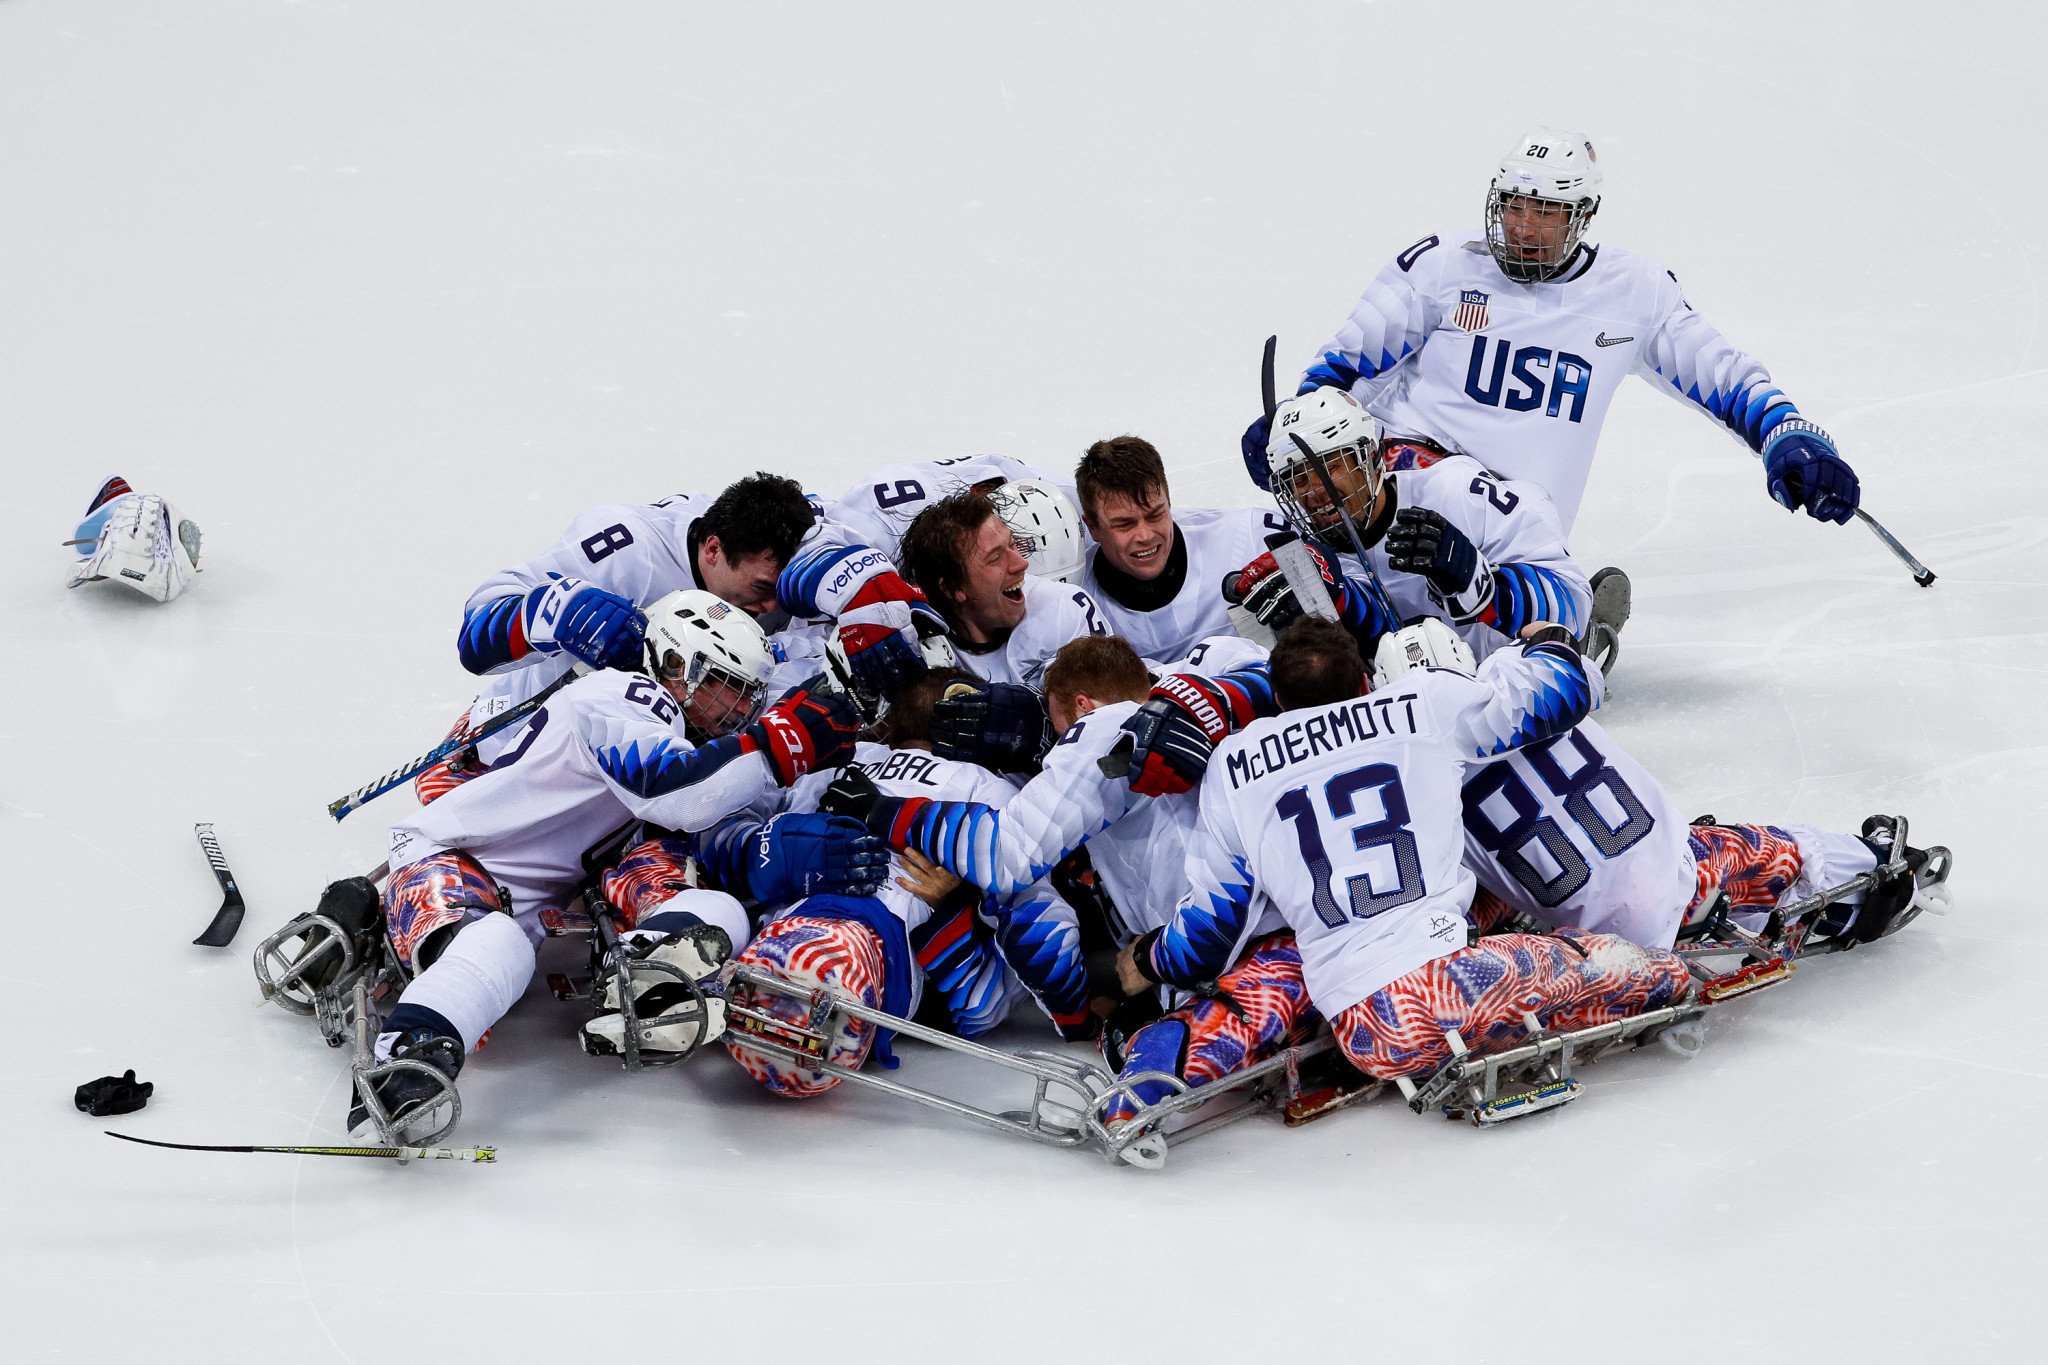 The United States produced a miraculous comeback to beat Canada and claim the Pyeongchang 2018 Para-ice hockey title today ©Getty Images